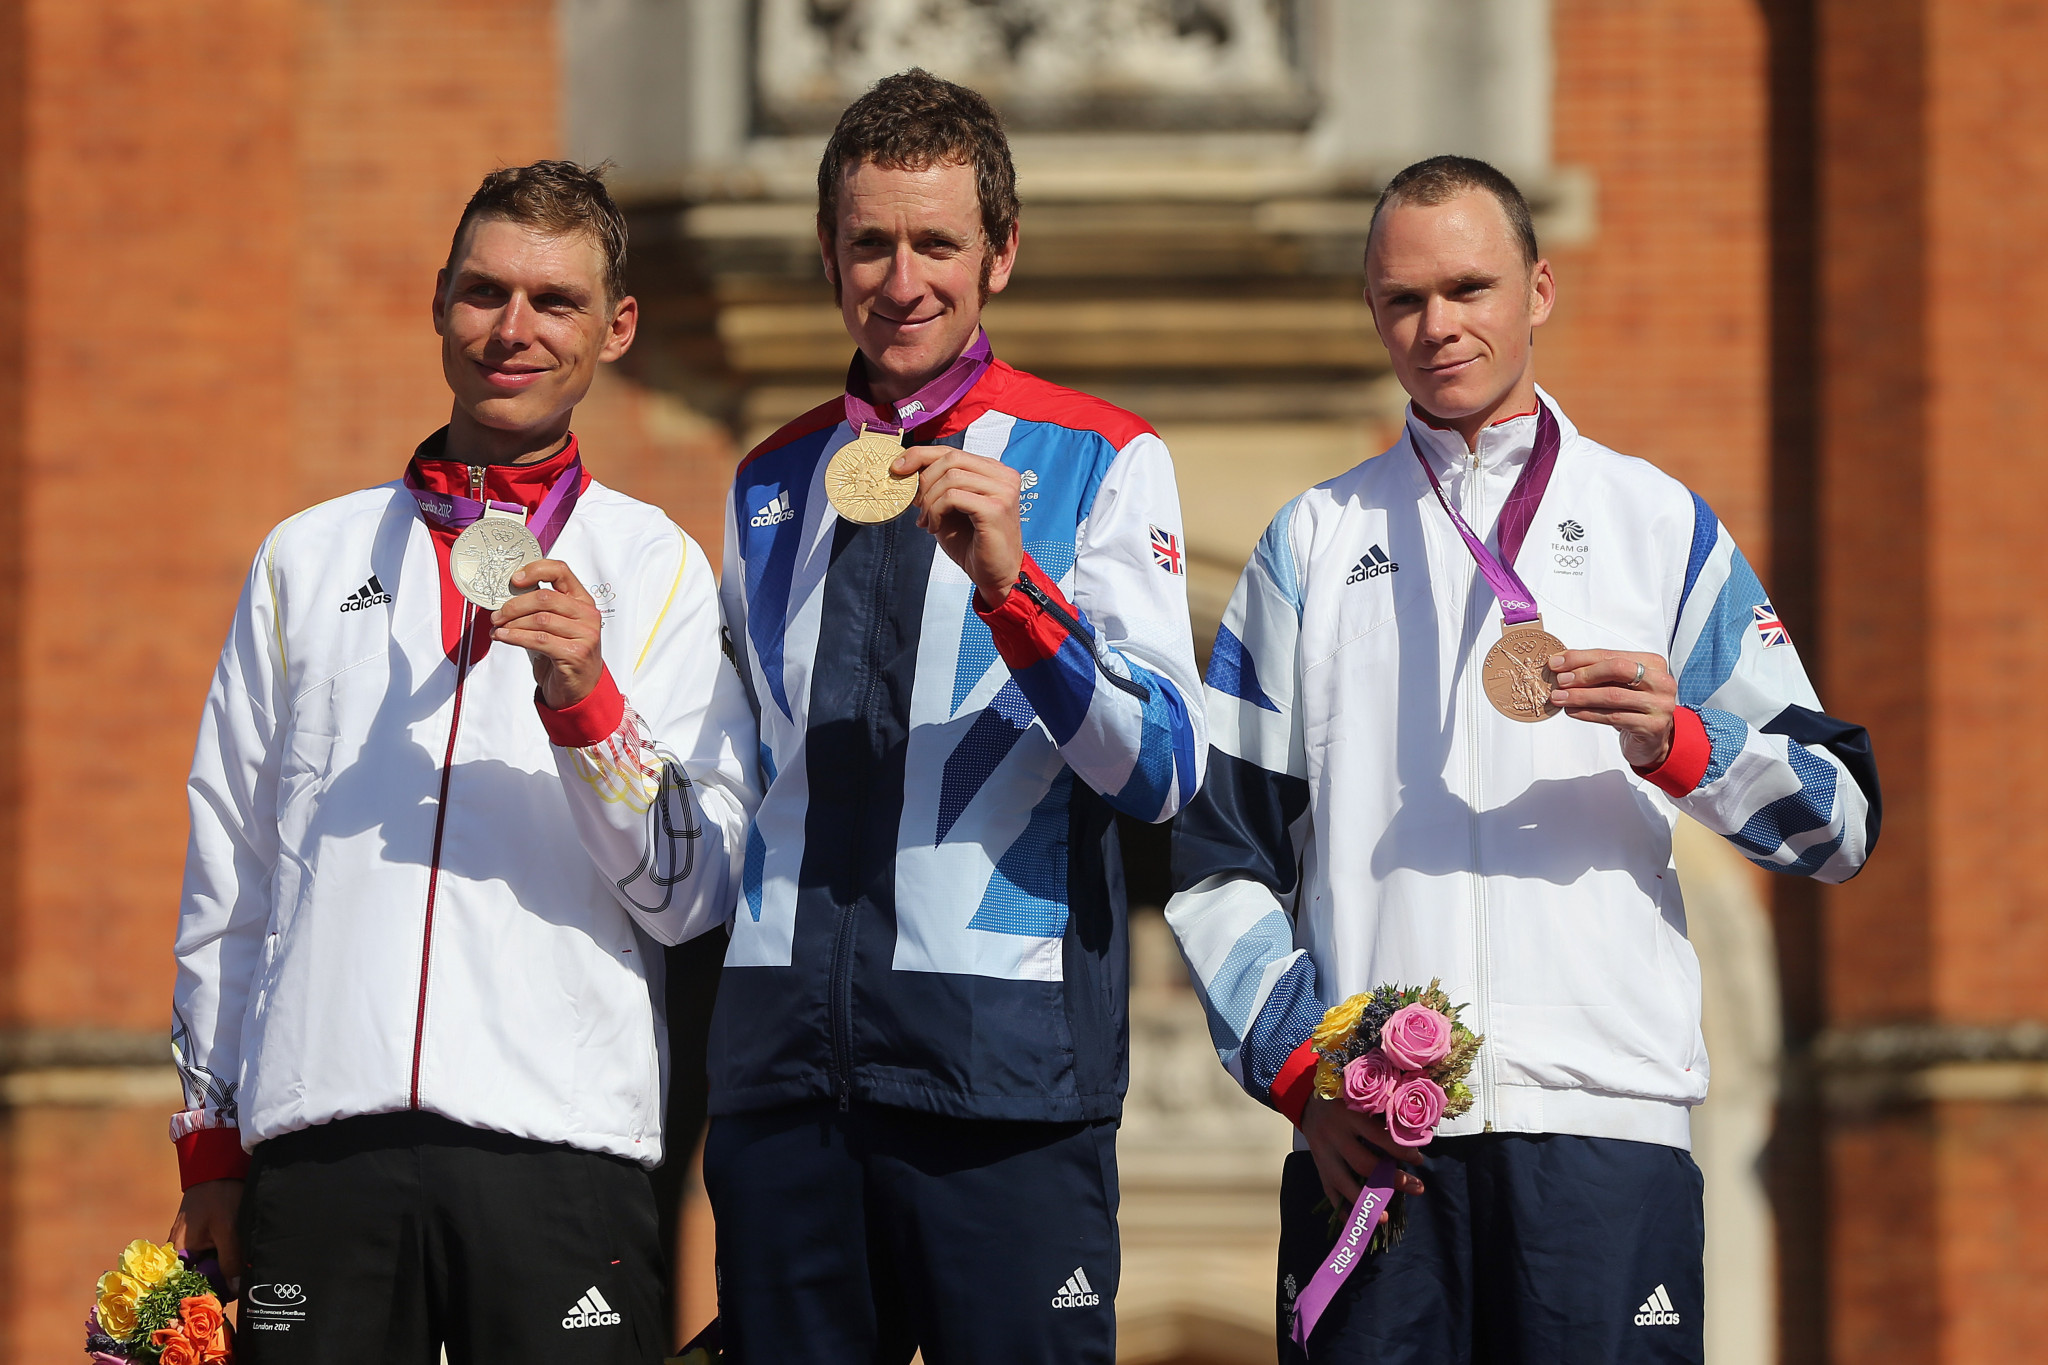 Tony Martin, left, won a silver medal at the London 2012 Olympics as Chris Froome, right, took bronze ©Getty Images